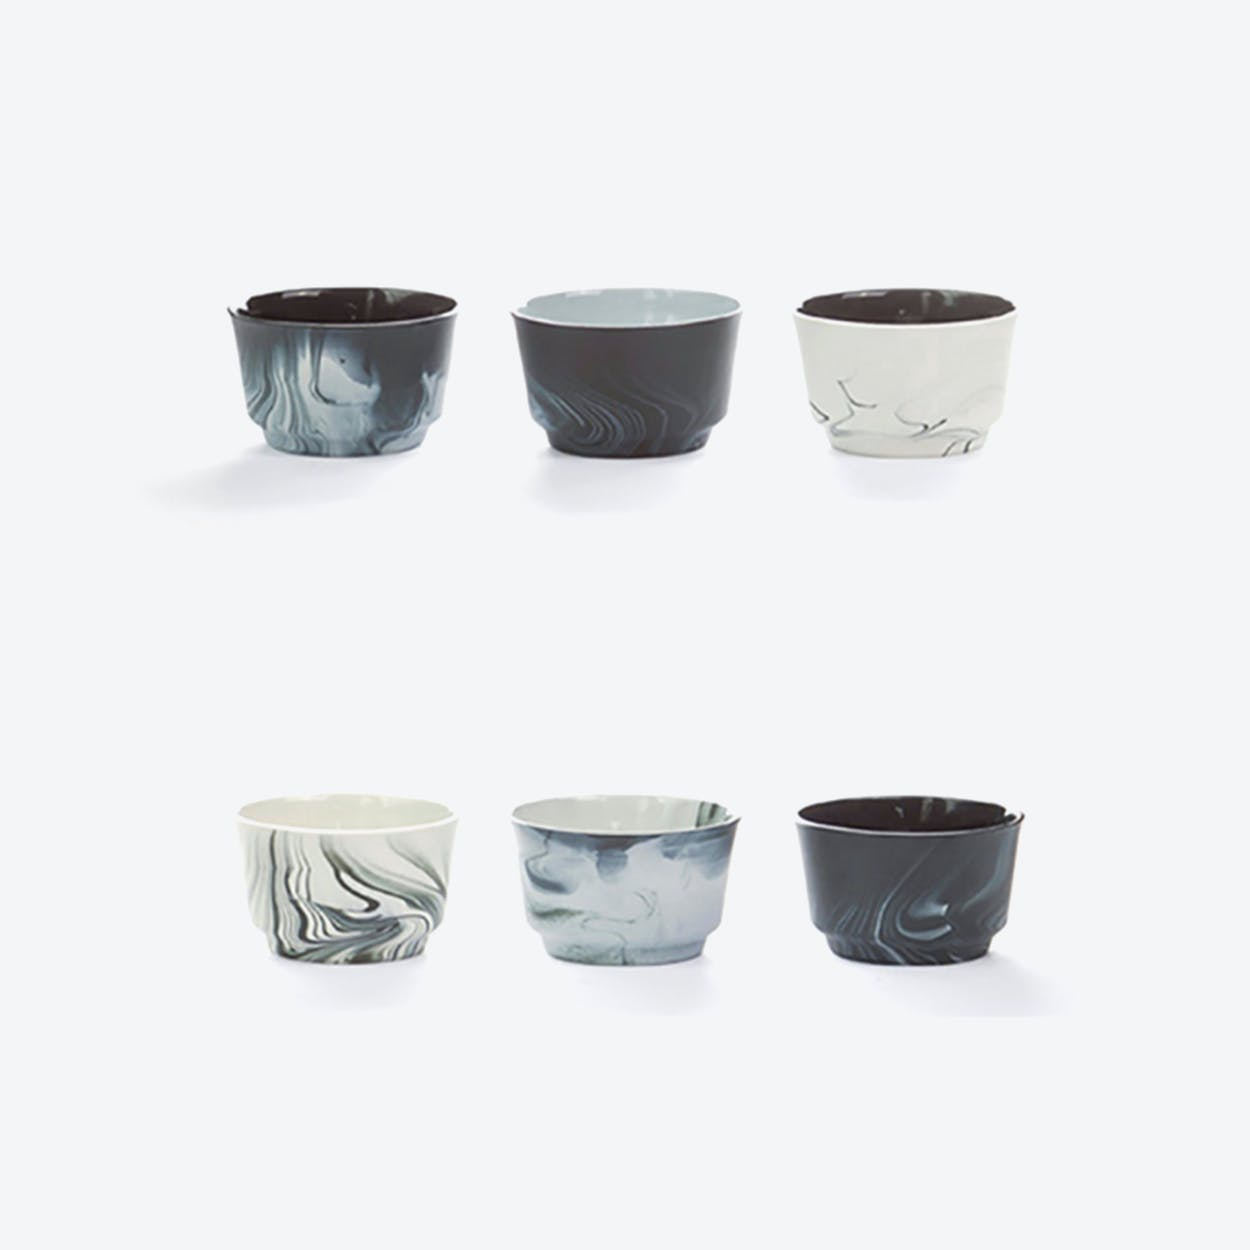 Pigments & Porcelain Cups in Black (set of 6x, 120ml)